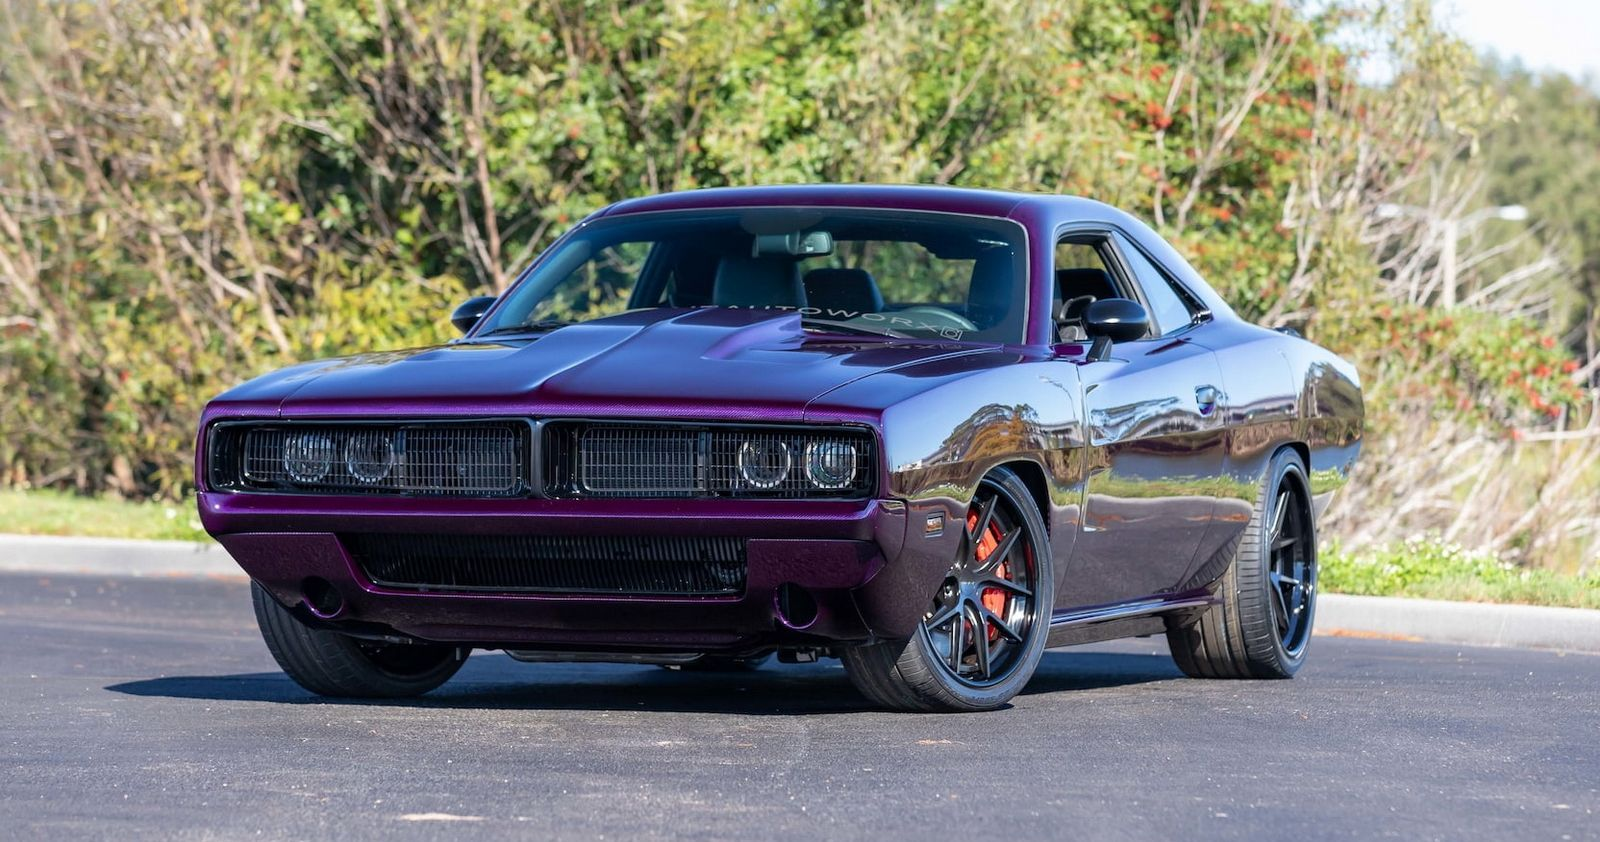 Check Out This 2019 Dodge Challenger With A 1969 Charger Bodykit